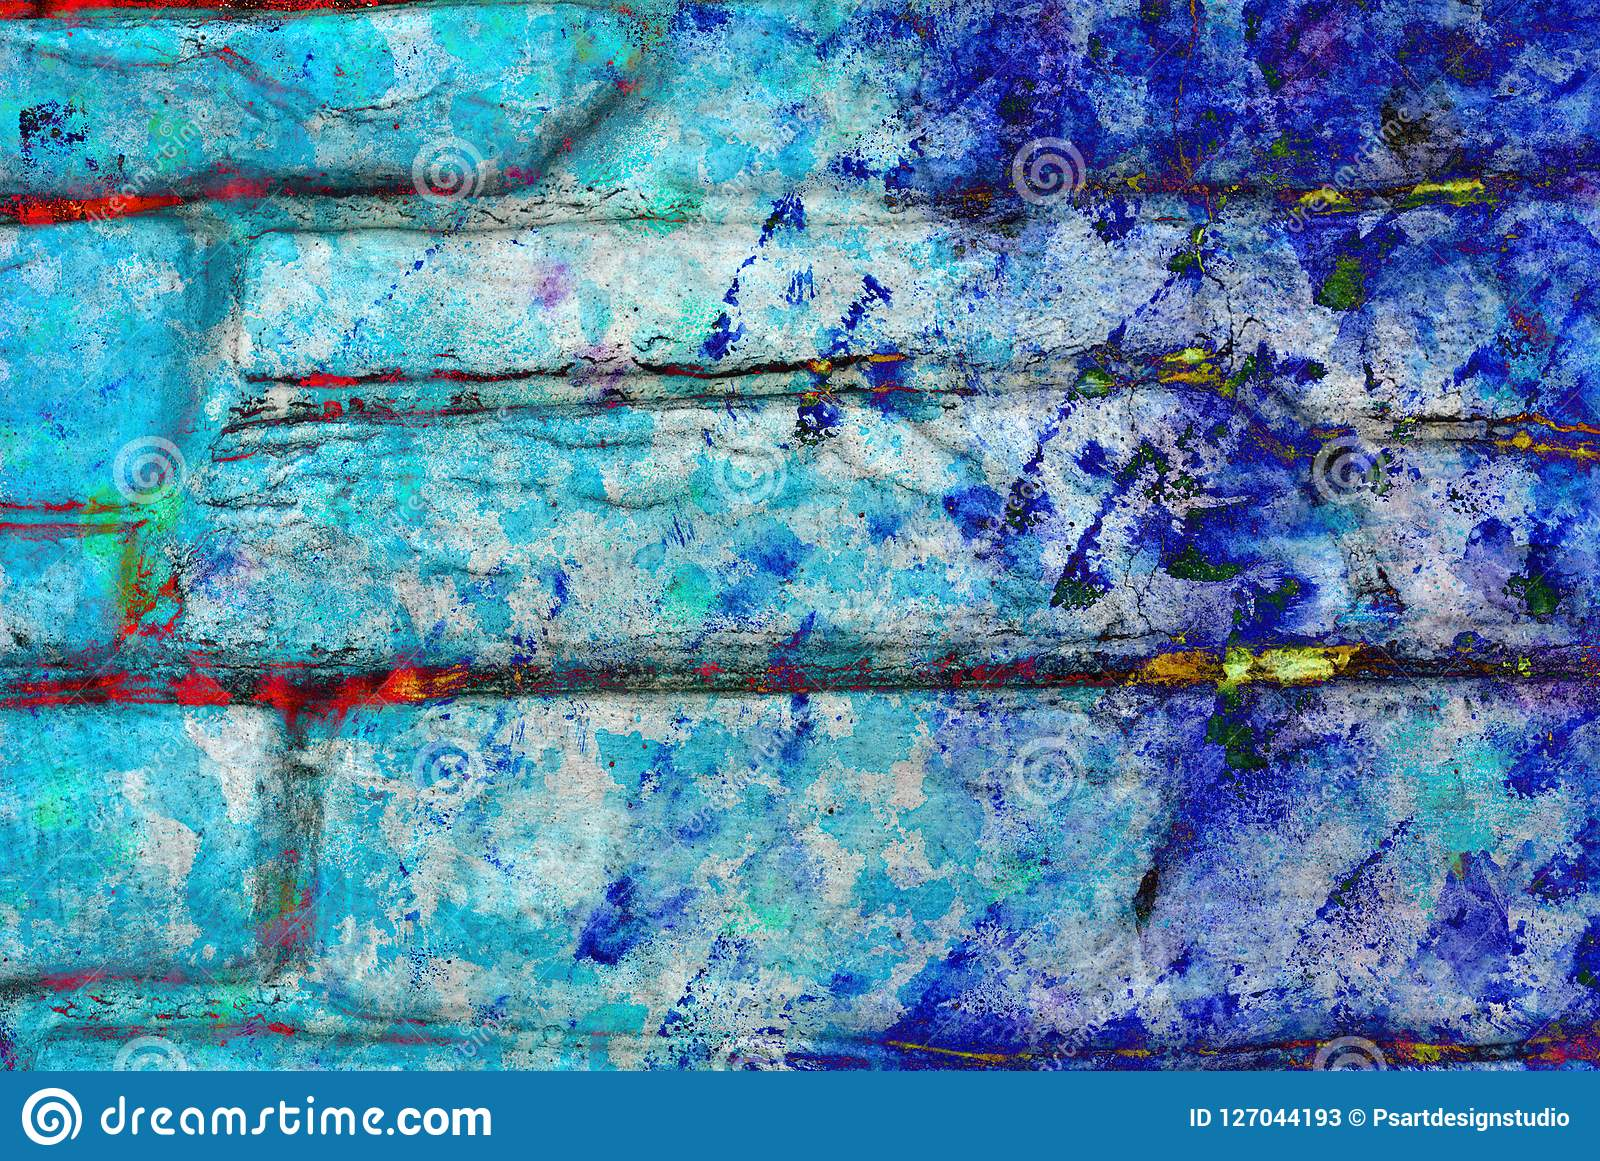 Mixed Media Artwork Abstract Colorful Artistic Painted